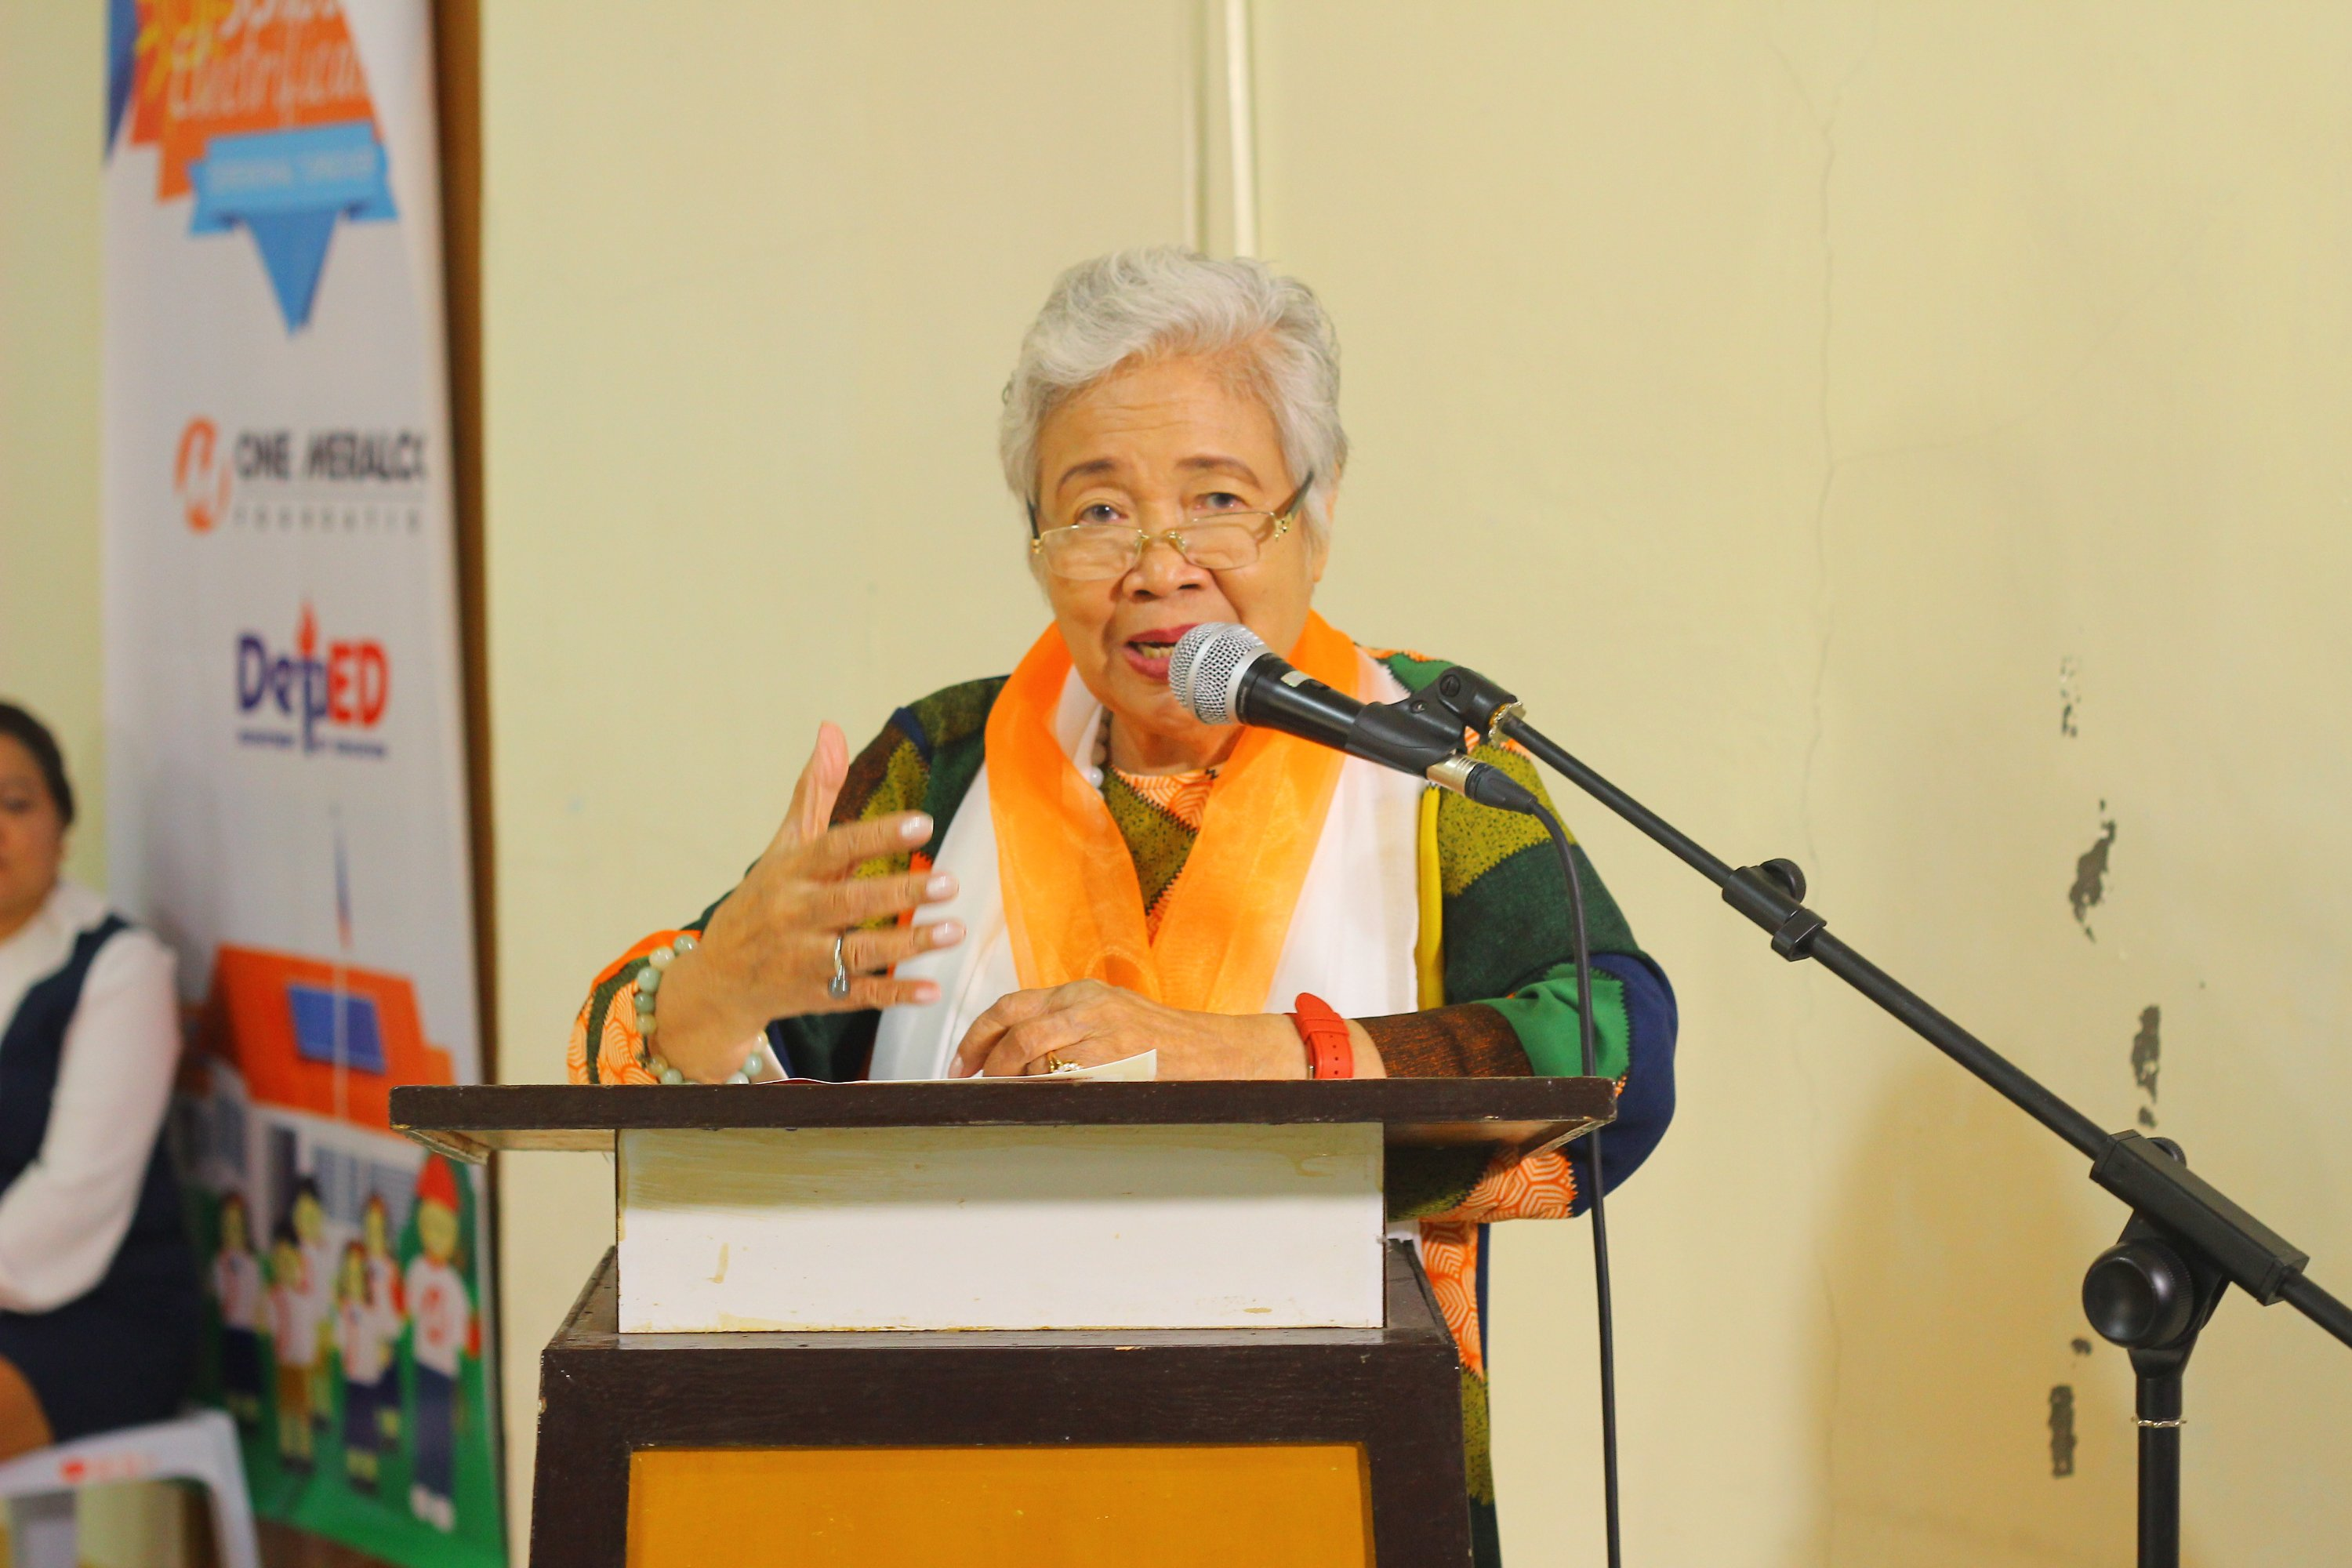 DepEd Secretary Leonor Briones at One Meralco Foundation School Electrification Launch in Dumaguete City